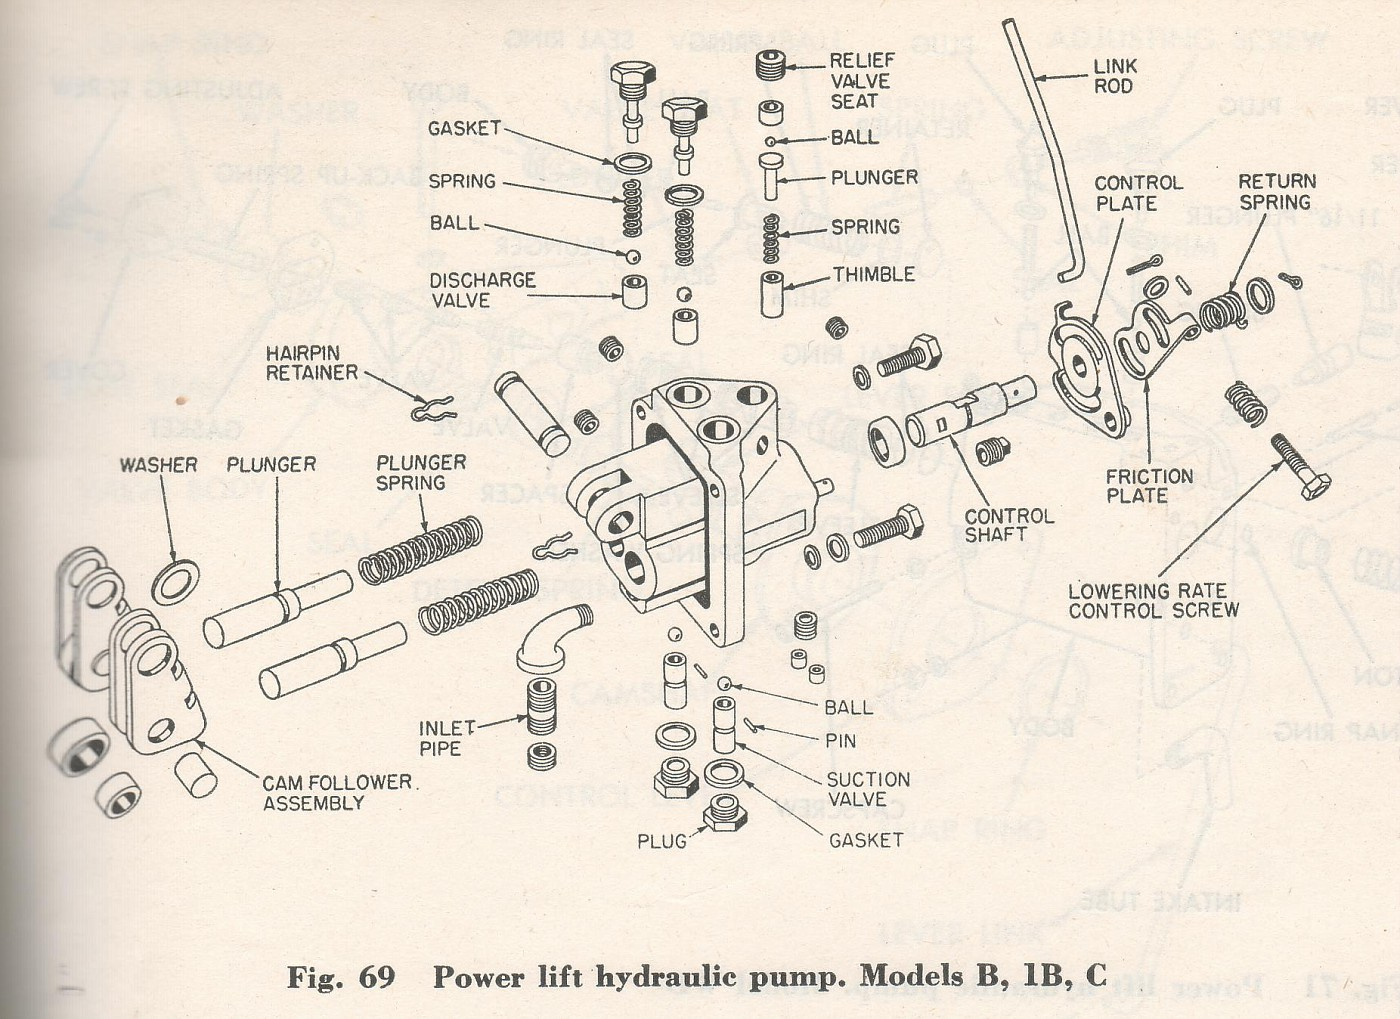 Allis Chalmers 1942 C Hydraulic Pump Yesterdays Tractors Engine Diagram Http Images46fotkicom V1637 Photos 3 34676 70449 Hydraulicpumpdrawing Vi